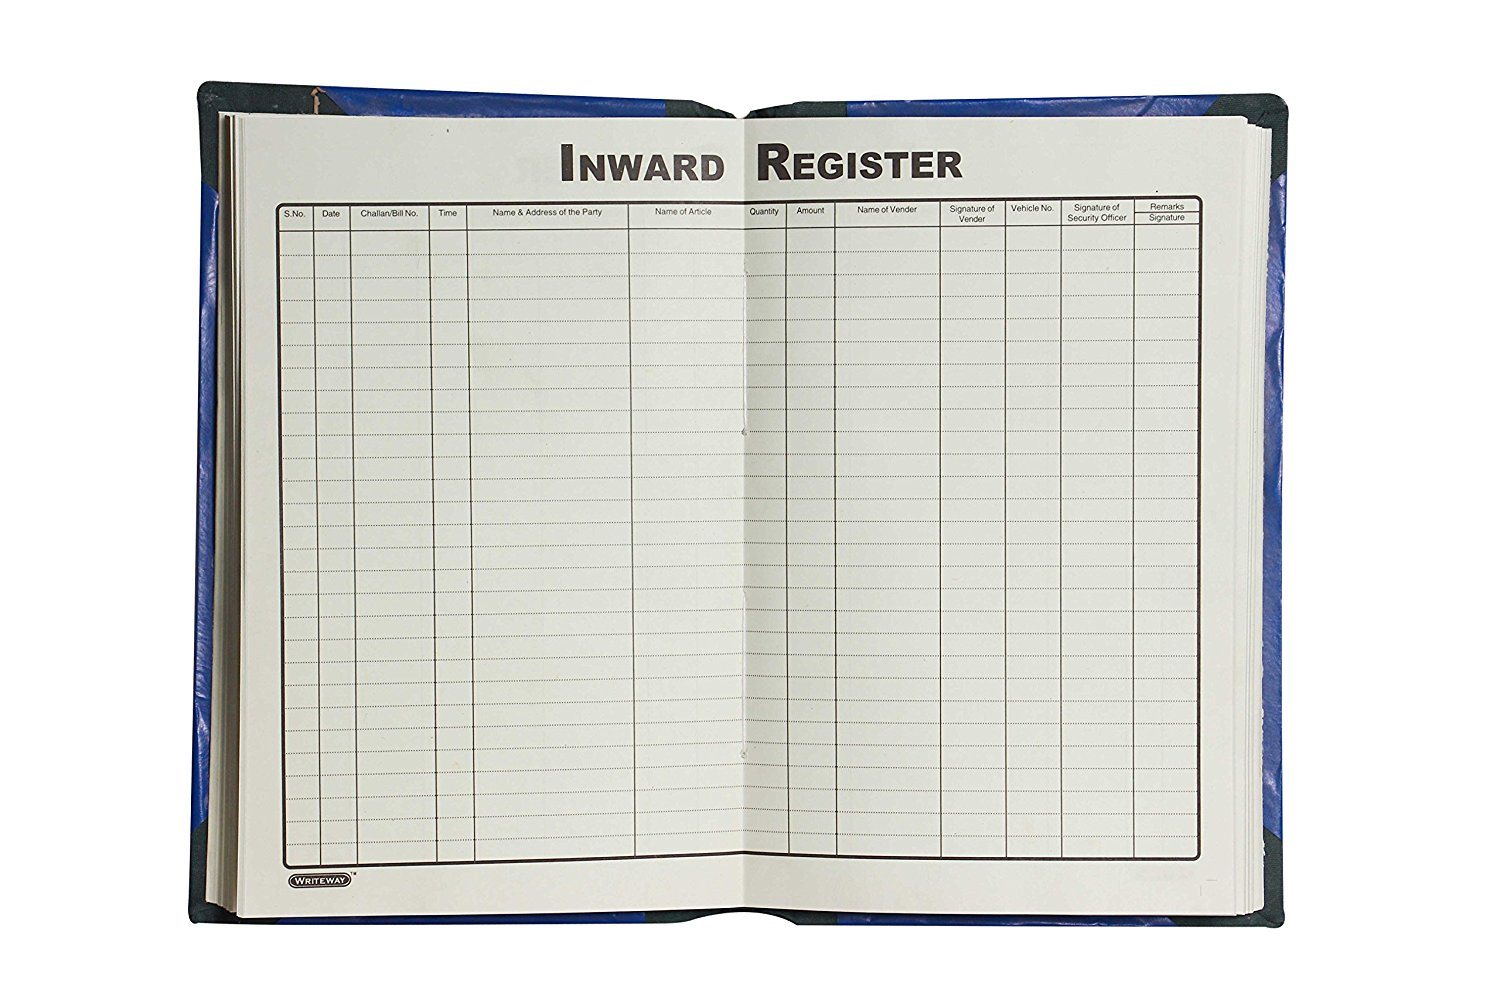 Inward Register, Rexine Binding, 288 Pages 6 Qr, Pack of 3